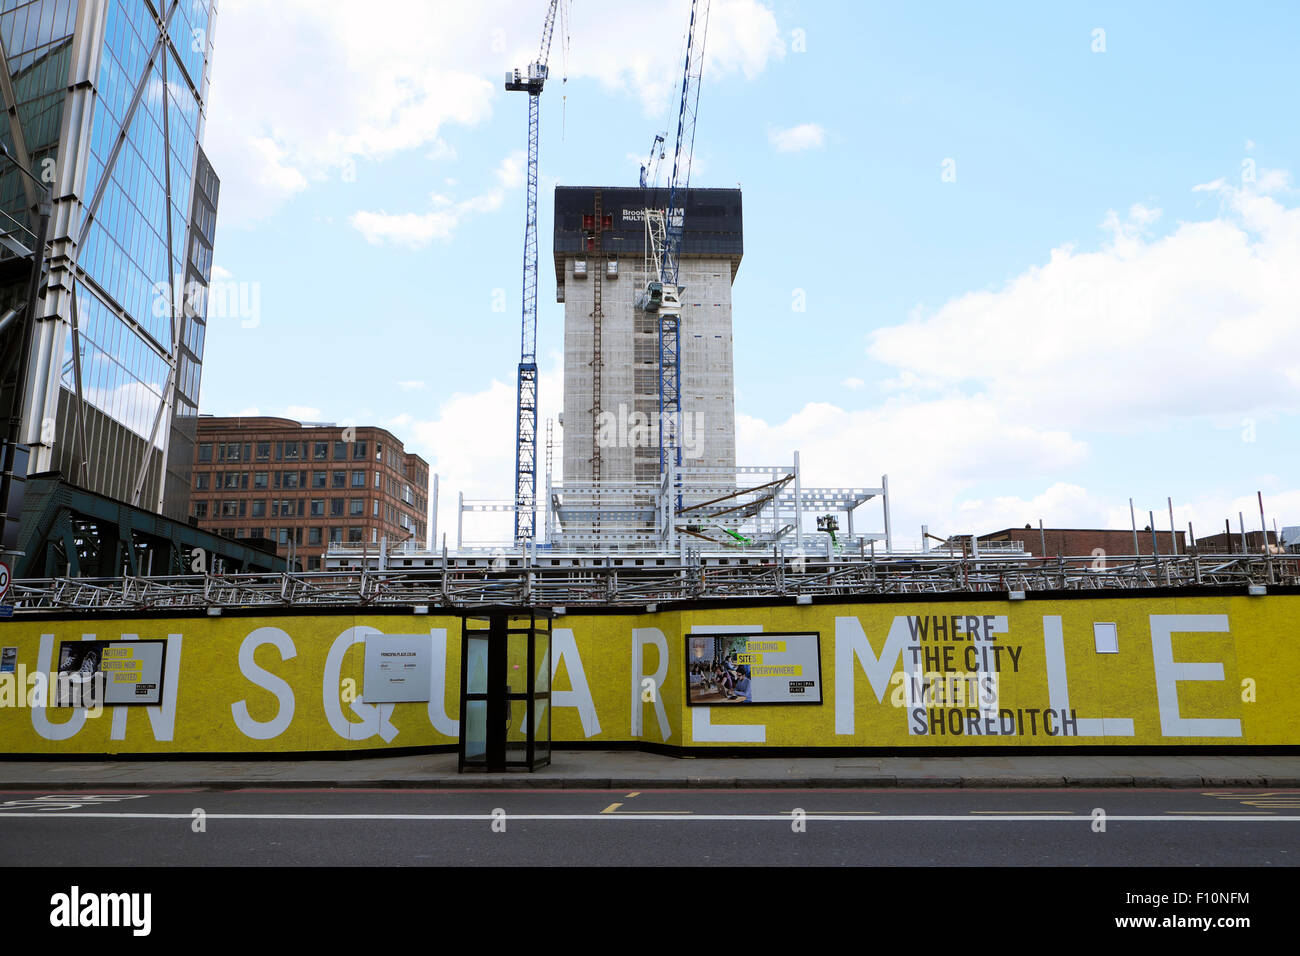 New construction site with building core, cranes and Square Mile hoarding in Norton Folgate, Shoreditch City of - Stock Image